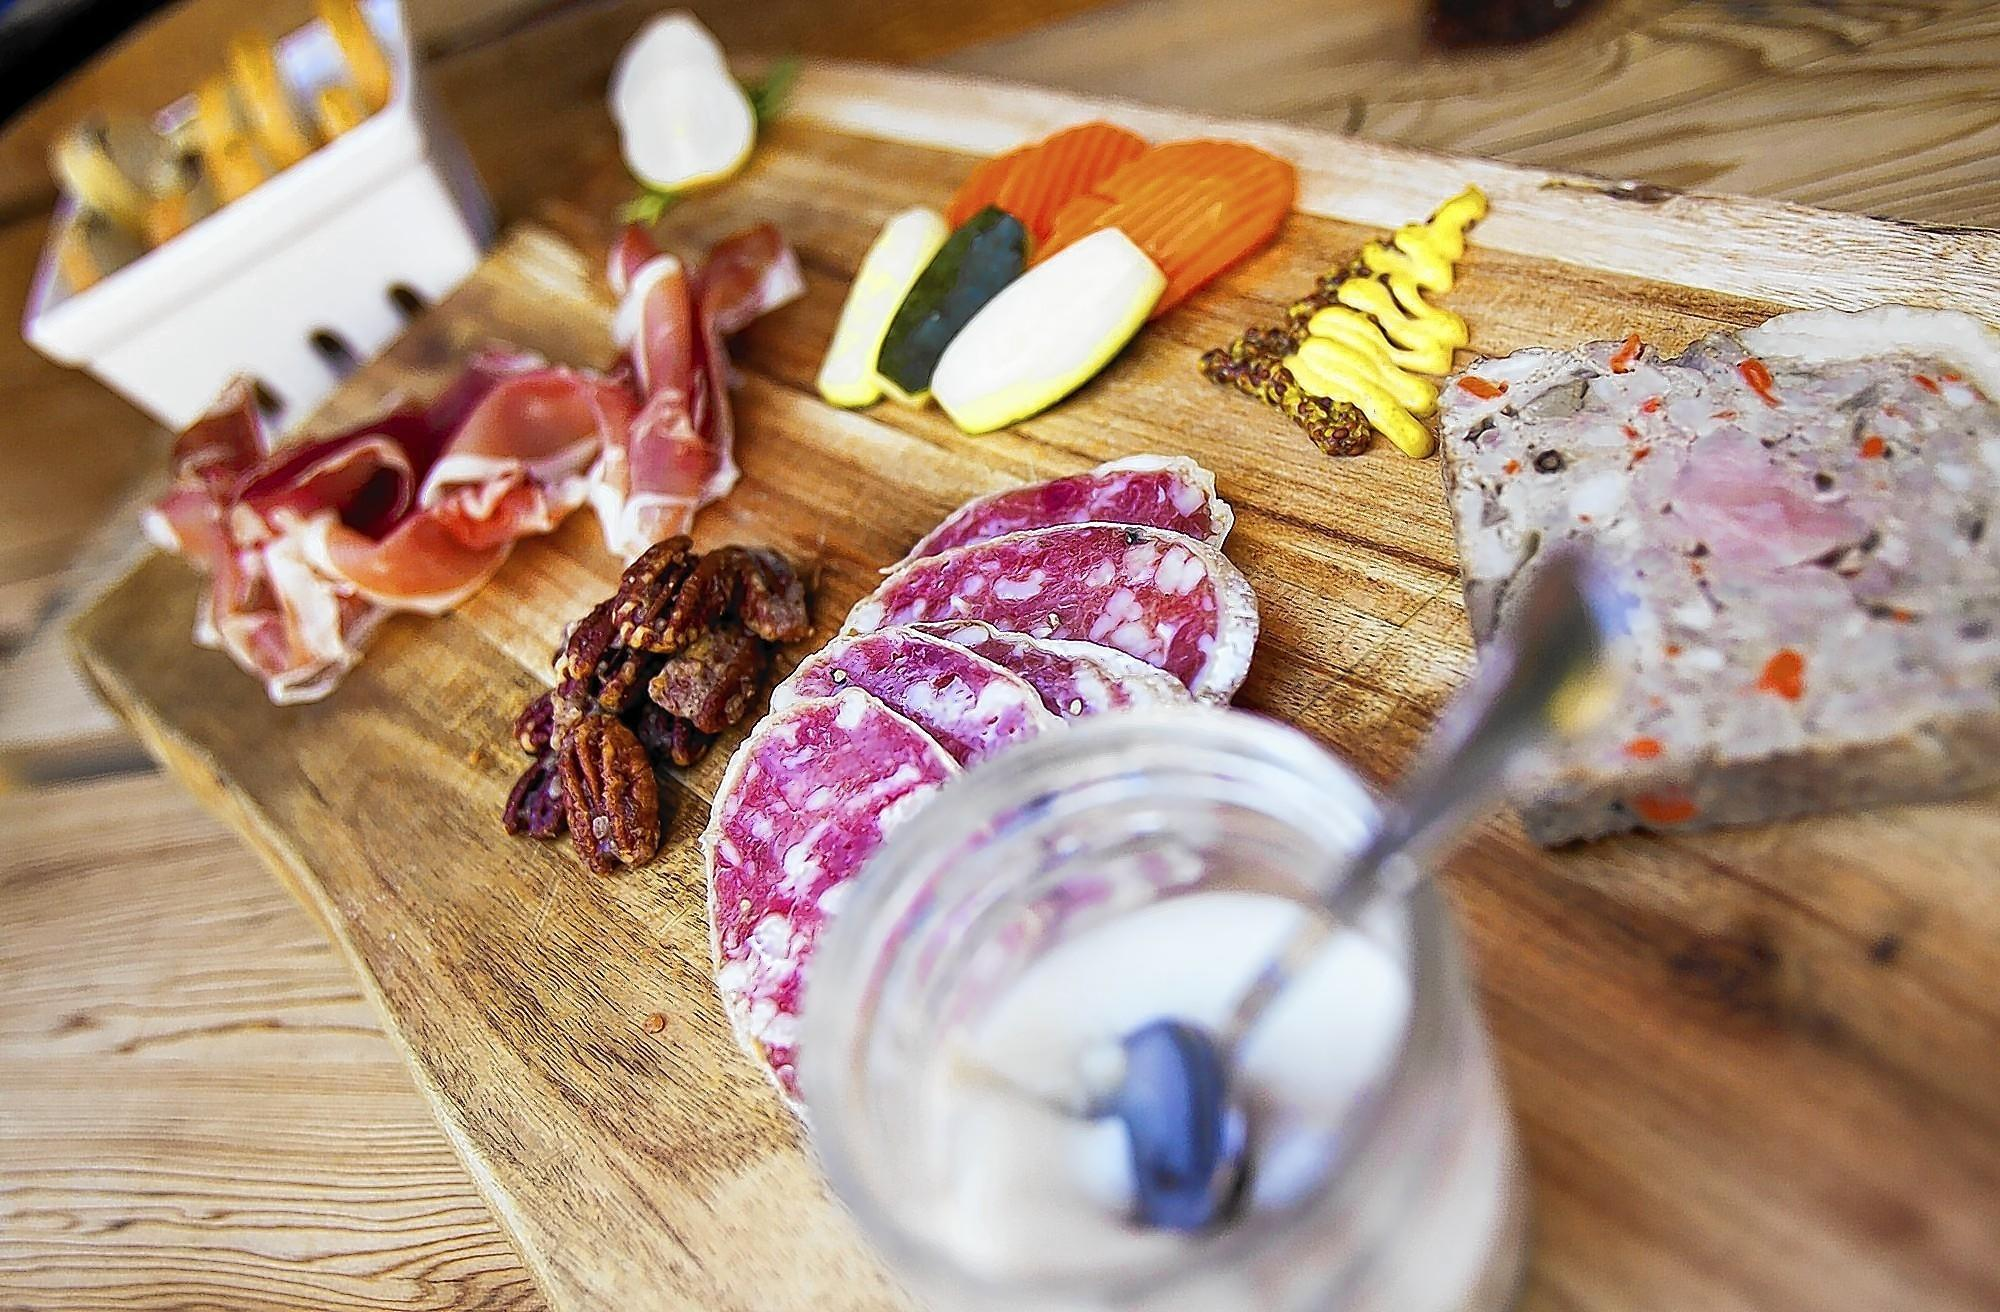 The charcuterie platter from Provenance in Newport Beach.